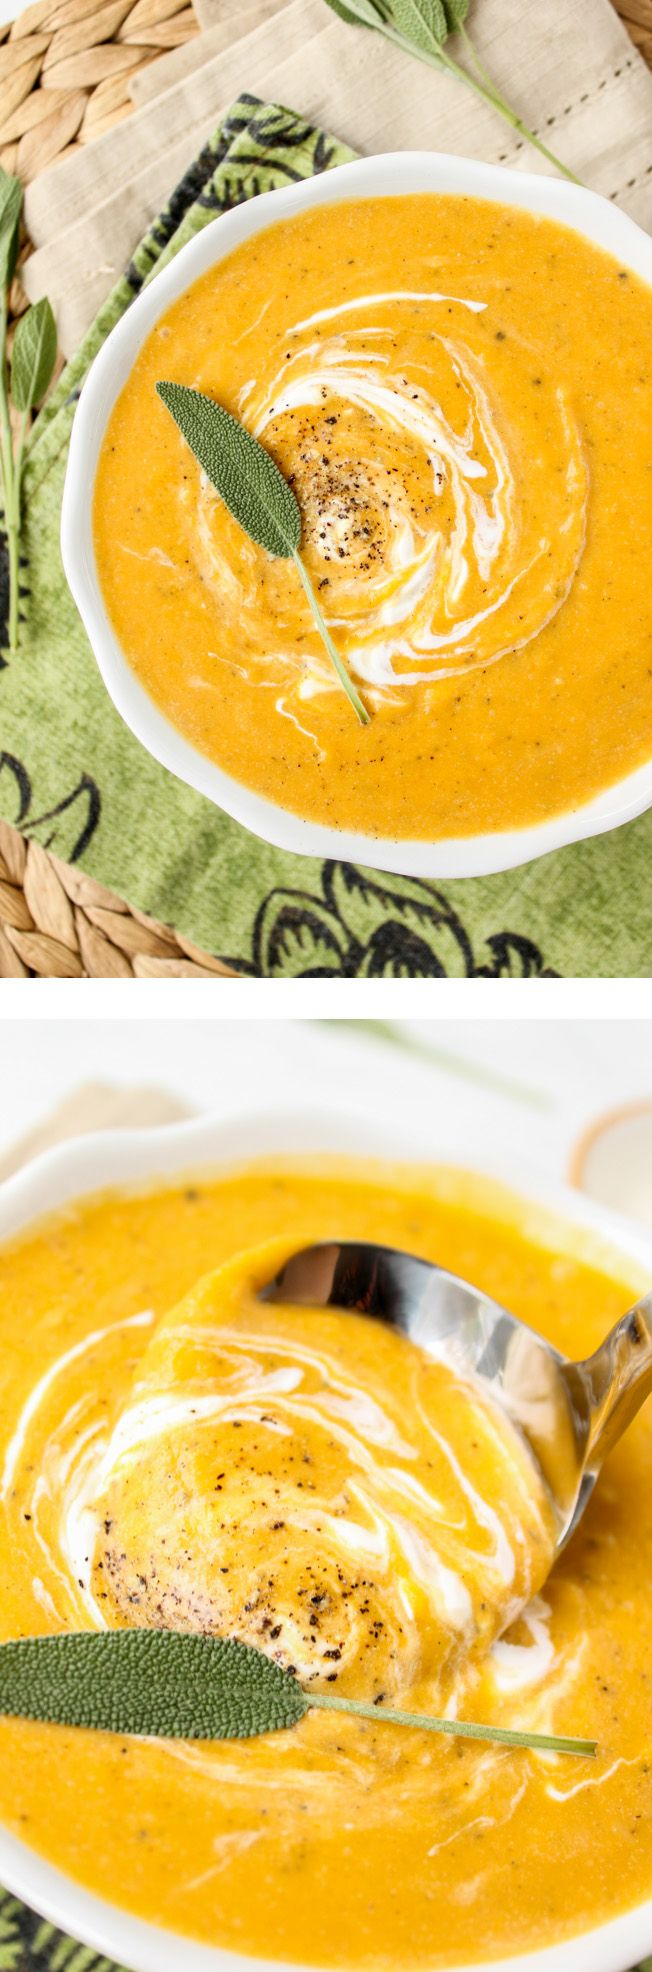 Roasted Butternut Squash Soup from The Food Charlatan // This soup is full of flavor but not calories! Comfort food for a cold night.